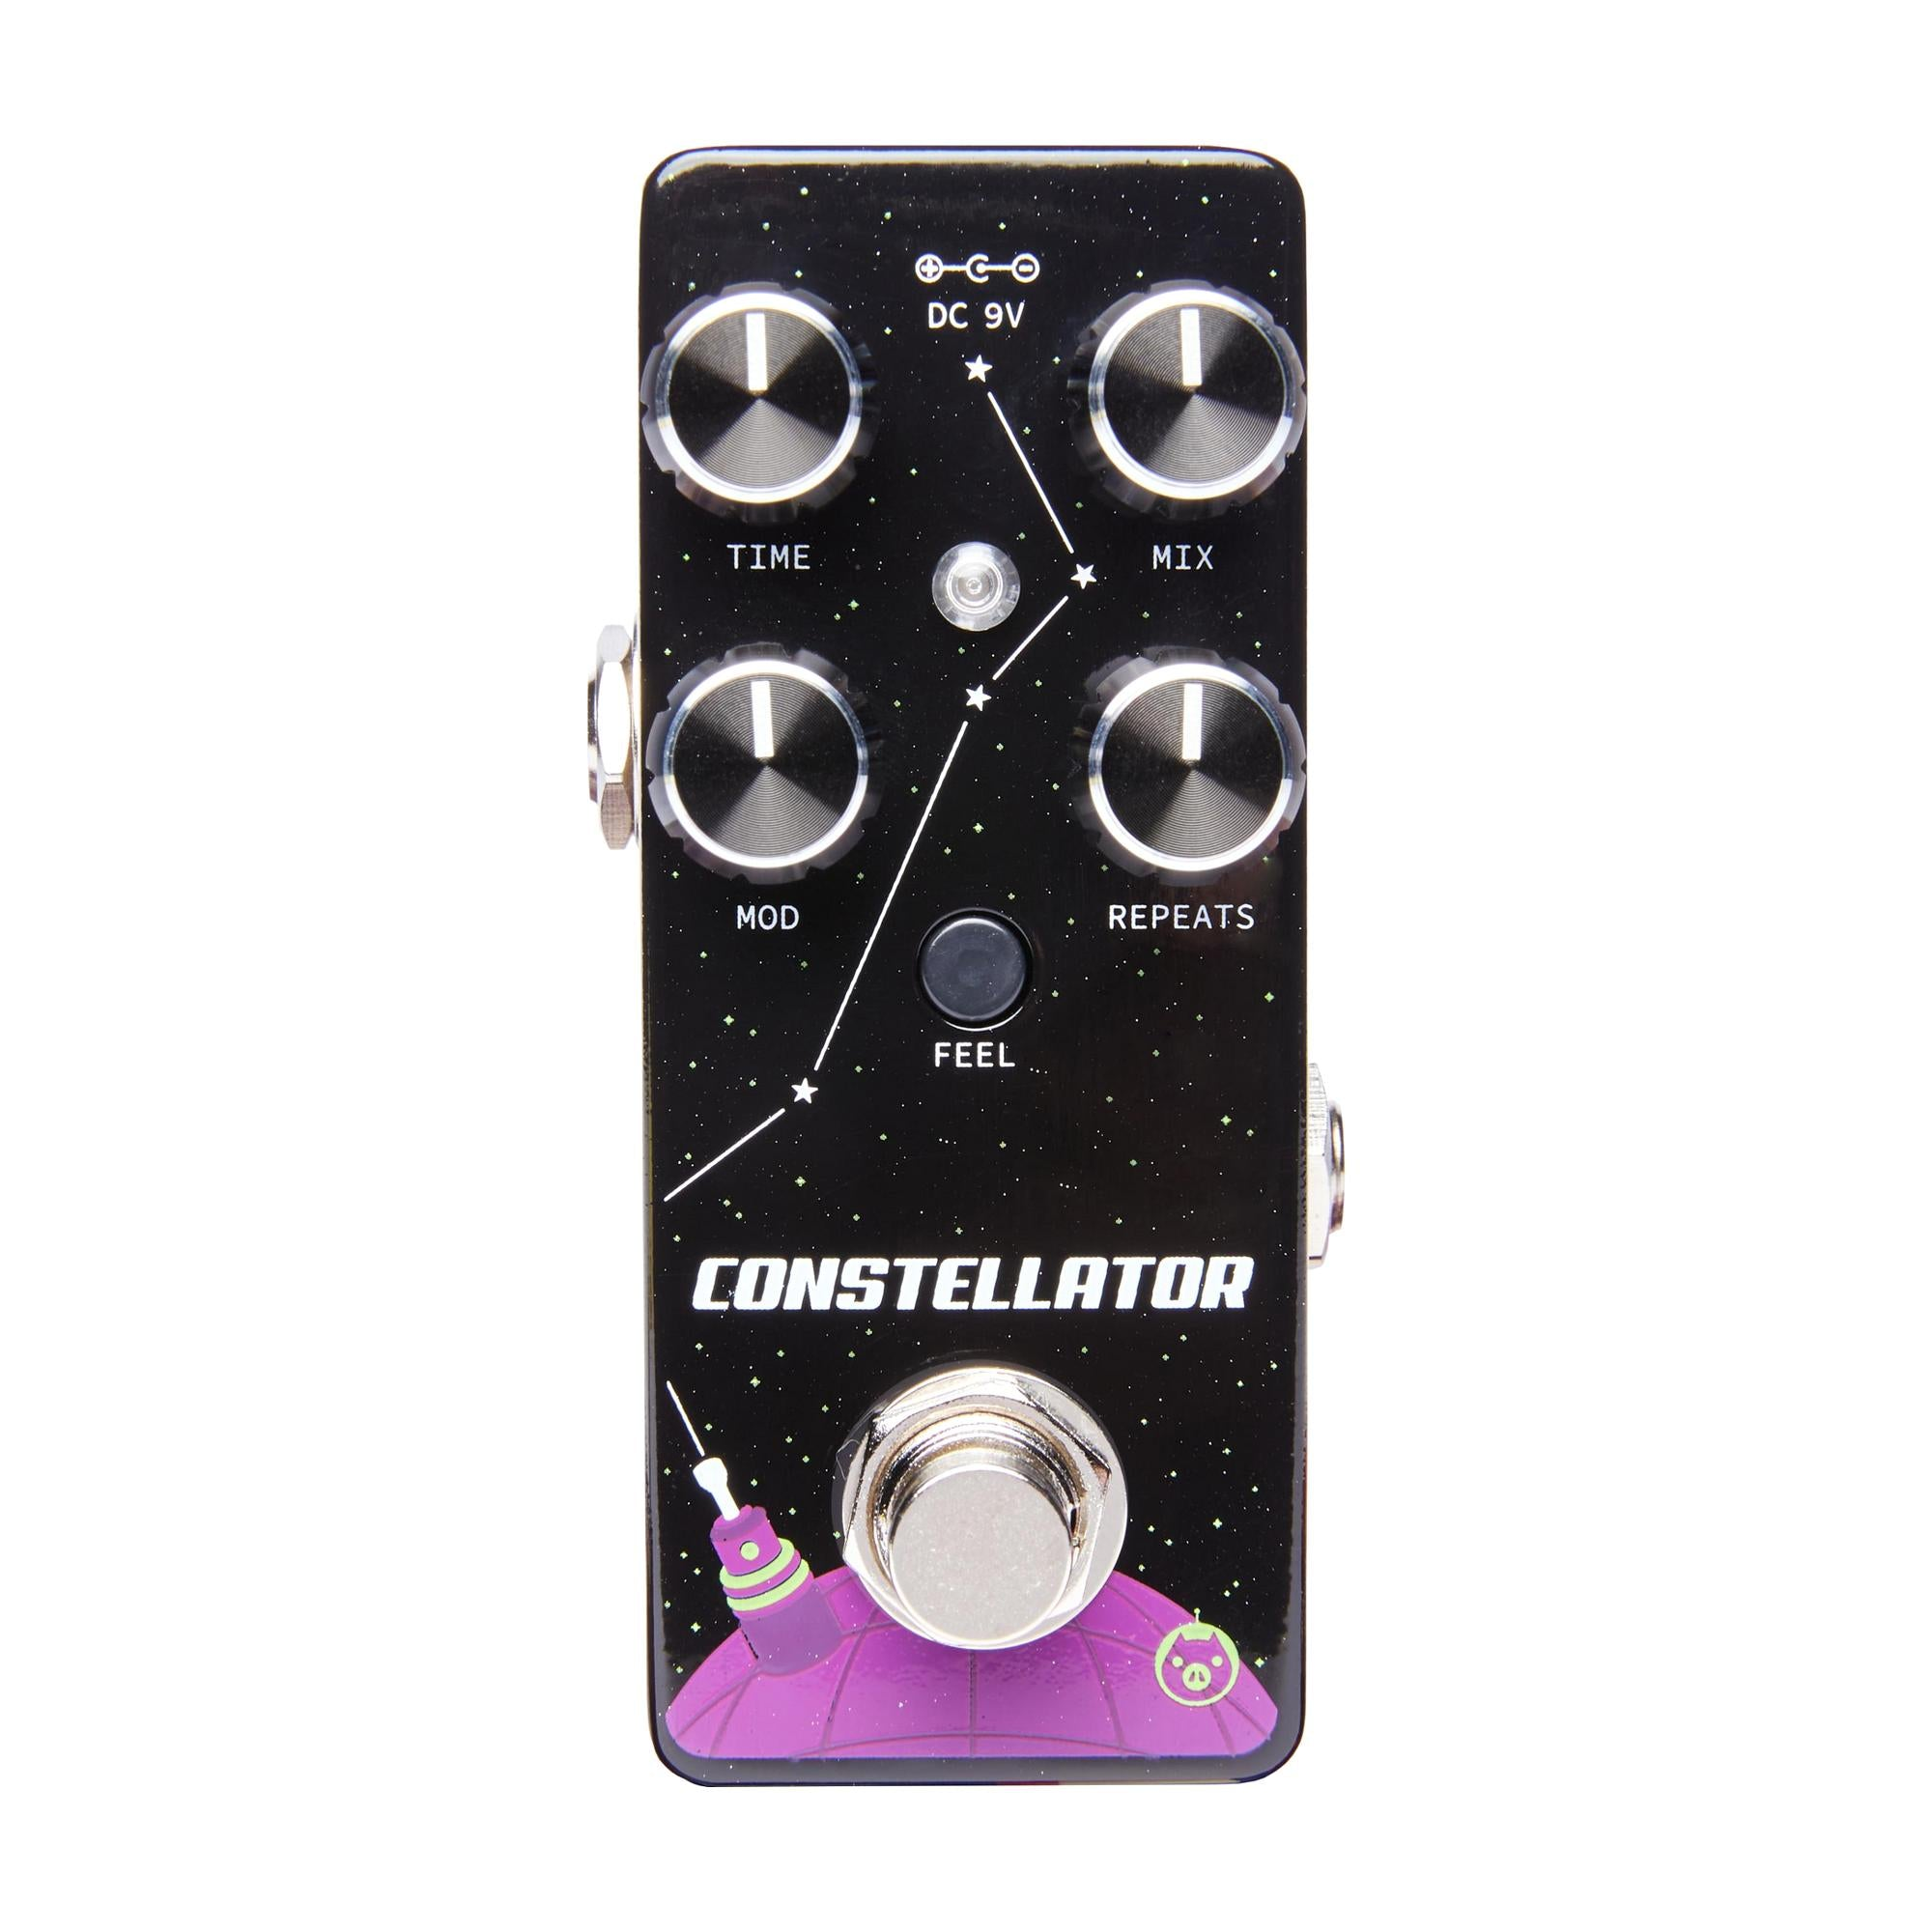 Pigtronix Constellator Modulated Analog Delay